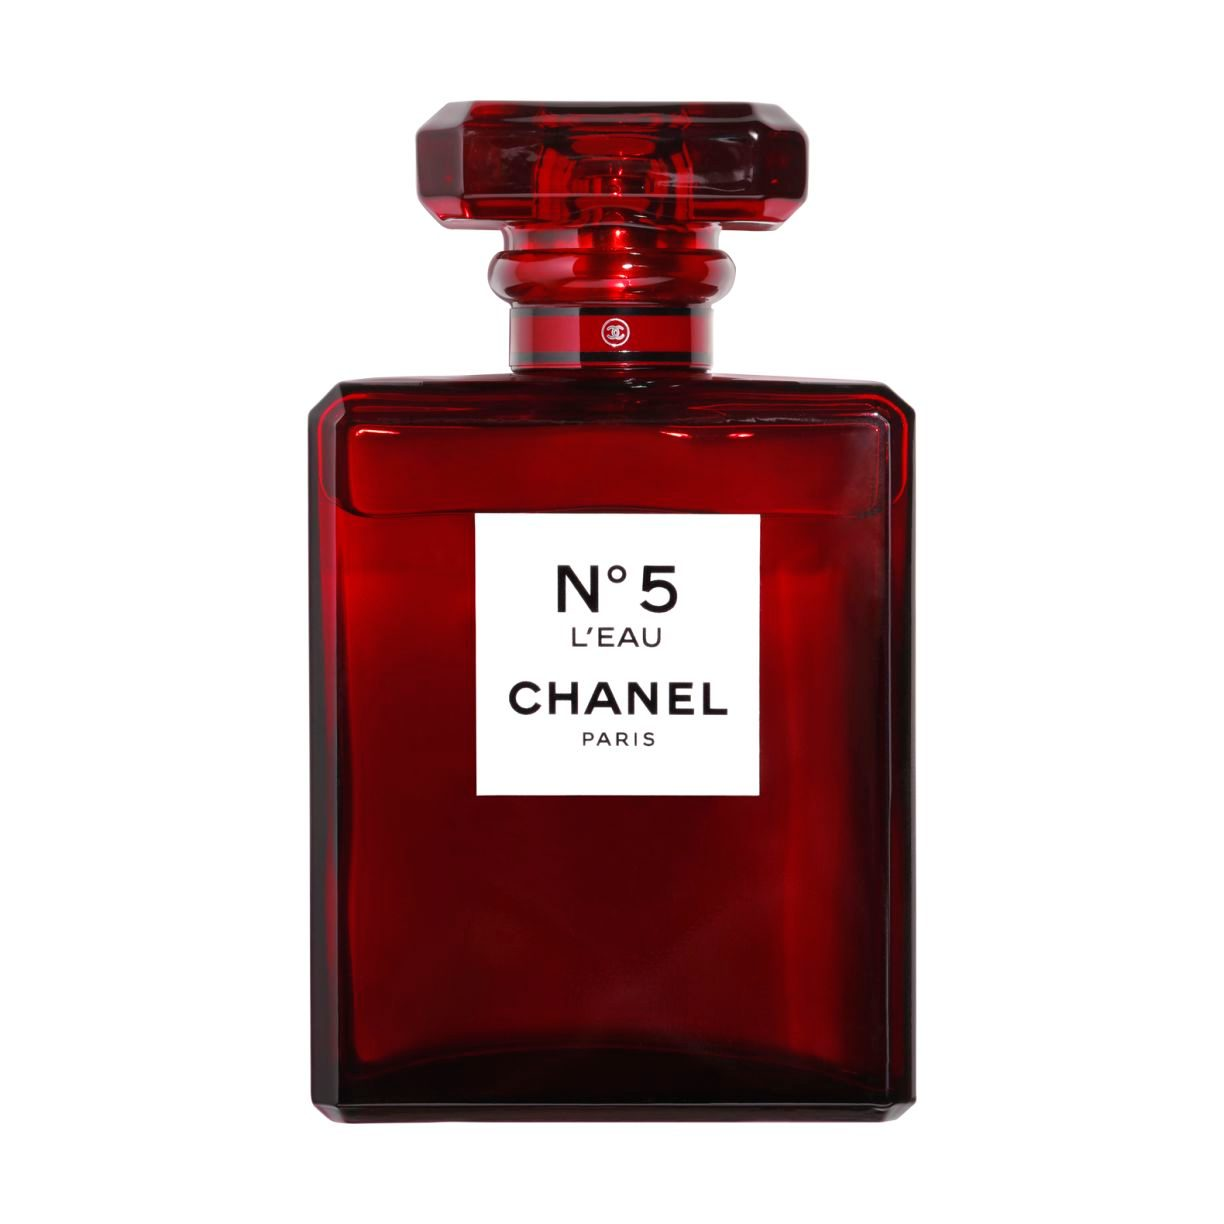 N°5 L'EAU EAU DE TOILETTE LIMITED EDITION 100ml